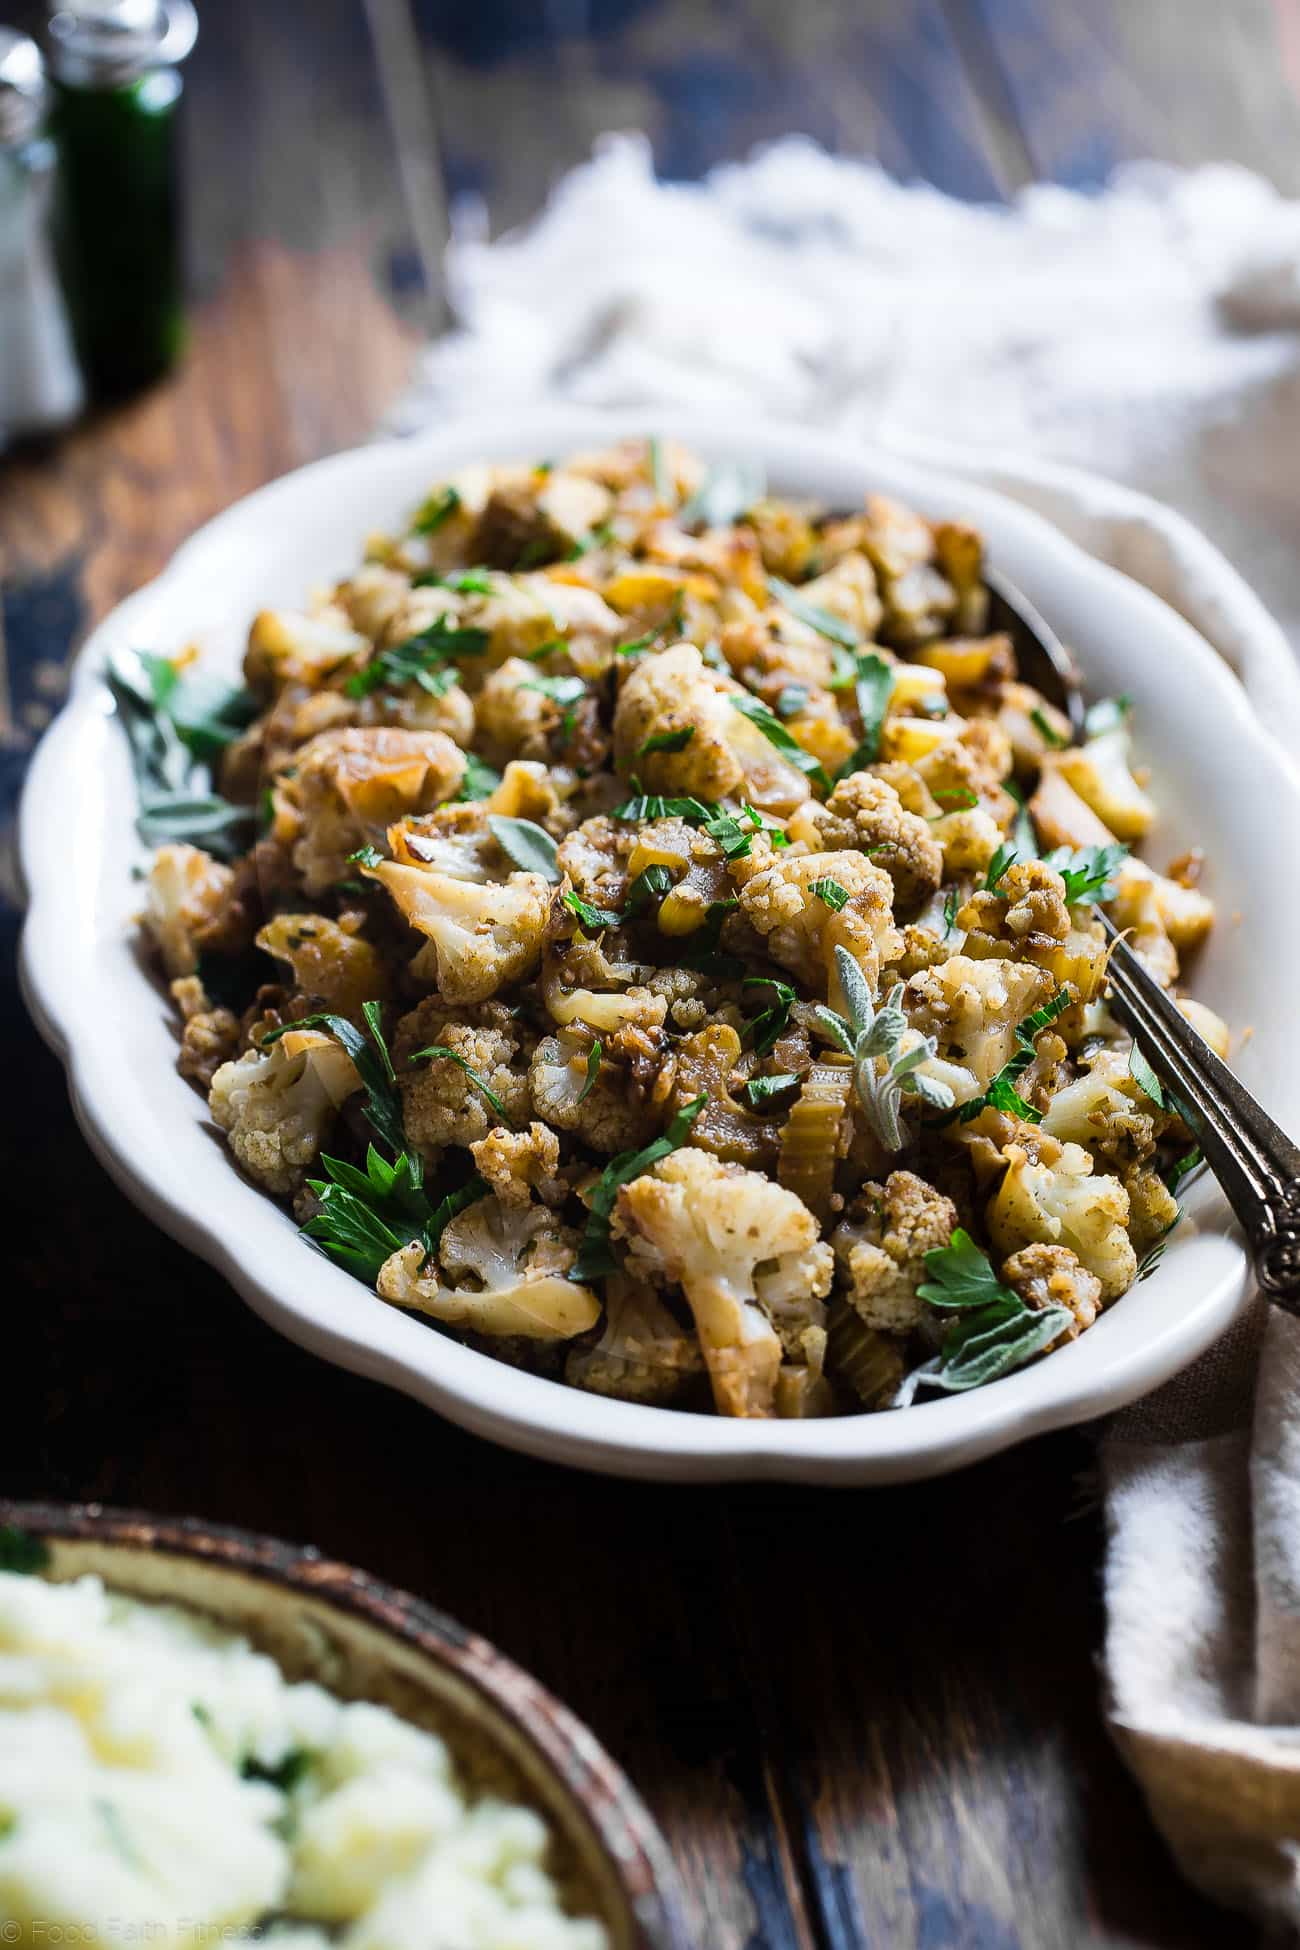 Cauliflower Low Carb Paleo Vegan Stuffing - This paleo thanksgiving stuffing is made entirely from vegetables but has all the flavor of traditional bread stuffing! It's super easy, whole30 compliant, paleo, vegan, gluten free and SO delicious! Perfect for Thanksgiving or Christmas! | Foodfaithfitness.com | @FoodFaithFit